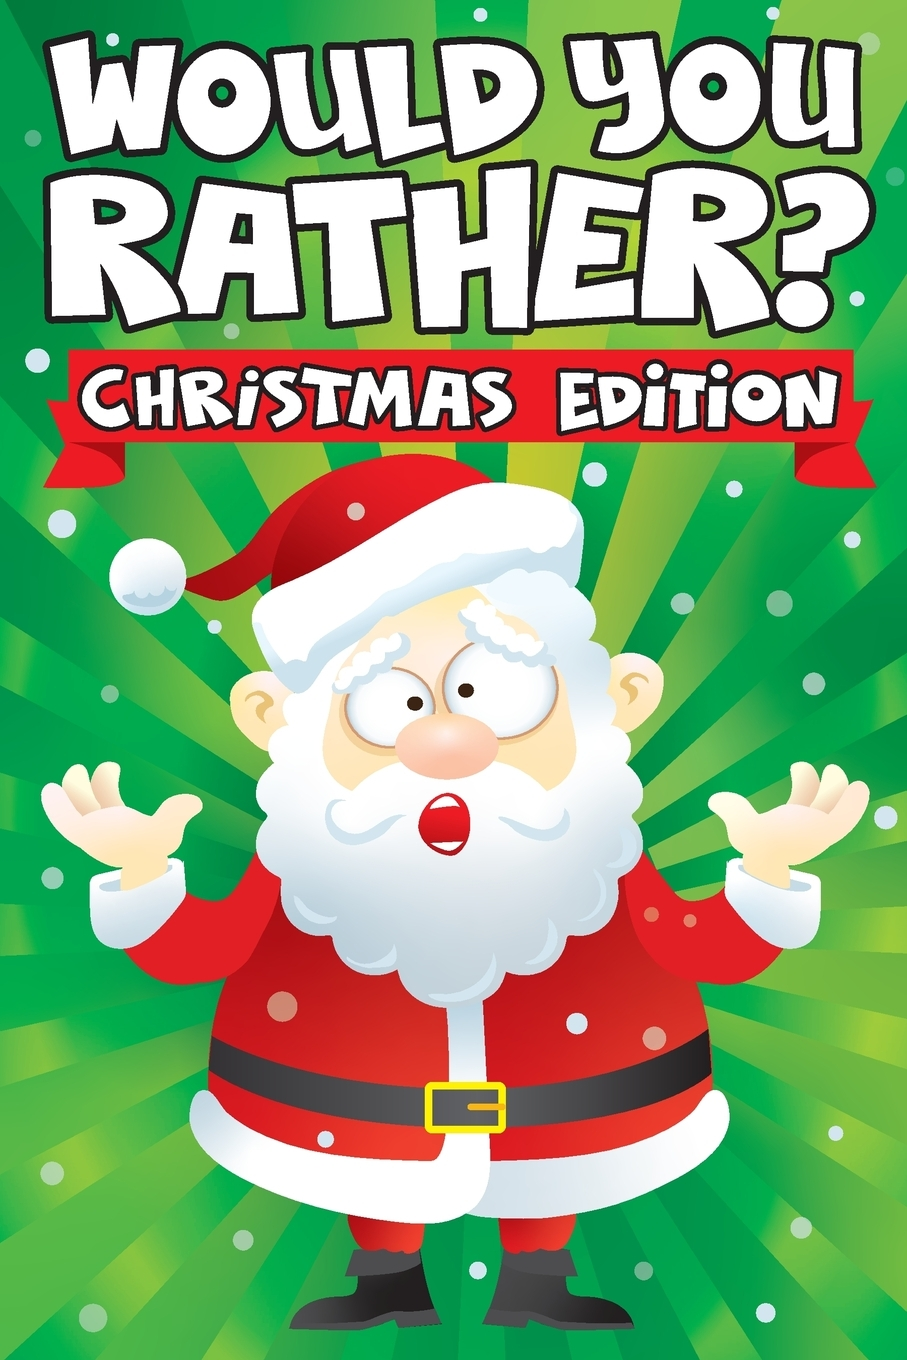 Stocking Stuffer Ideas: Would You Rather? Christmas